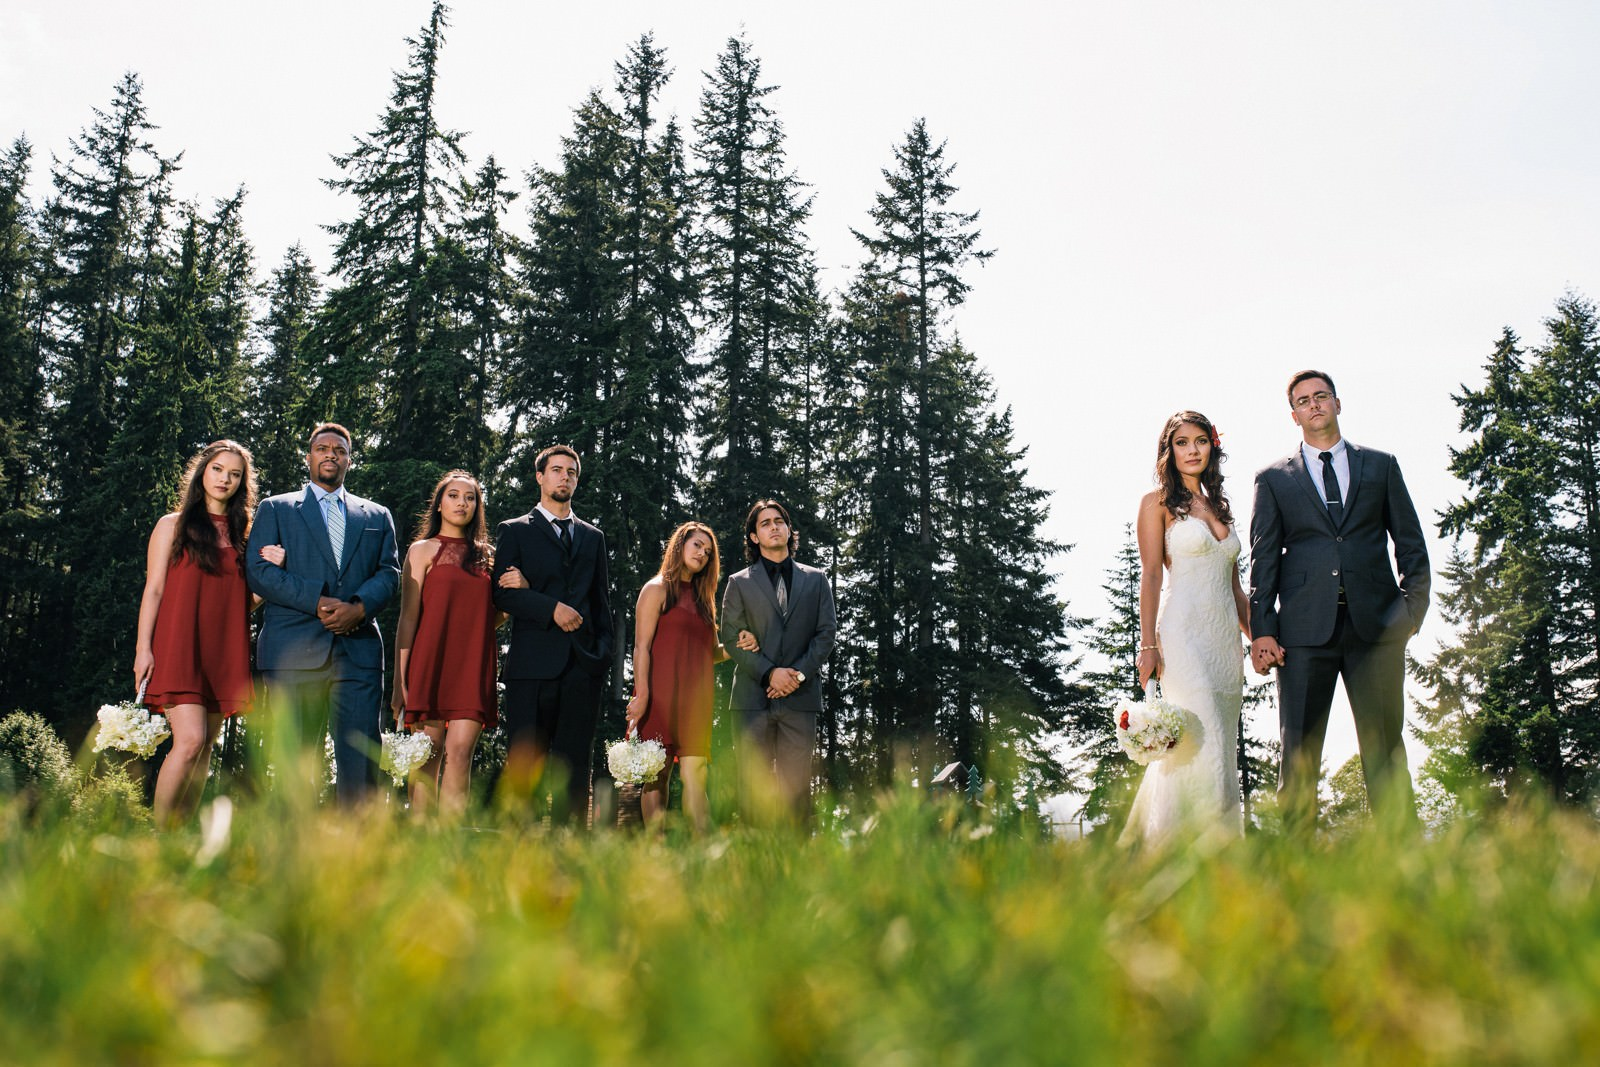 seattle-wedding-photographers-kitsap-memorial-state-park-wedding-32